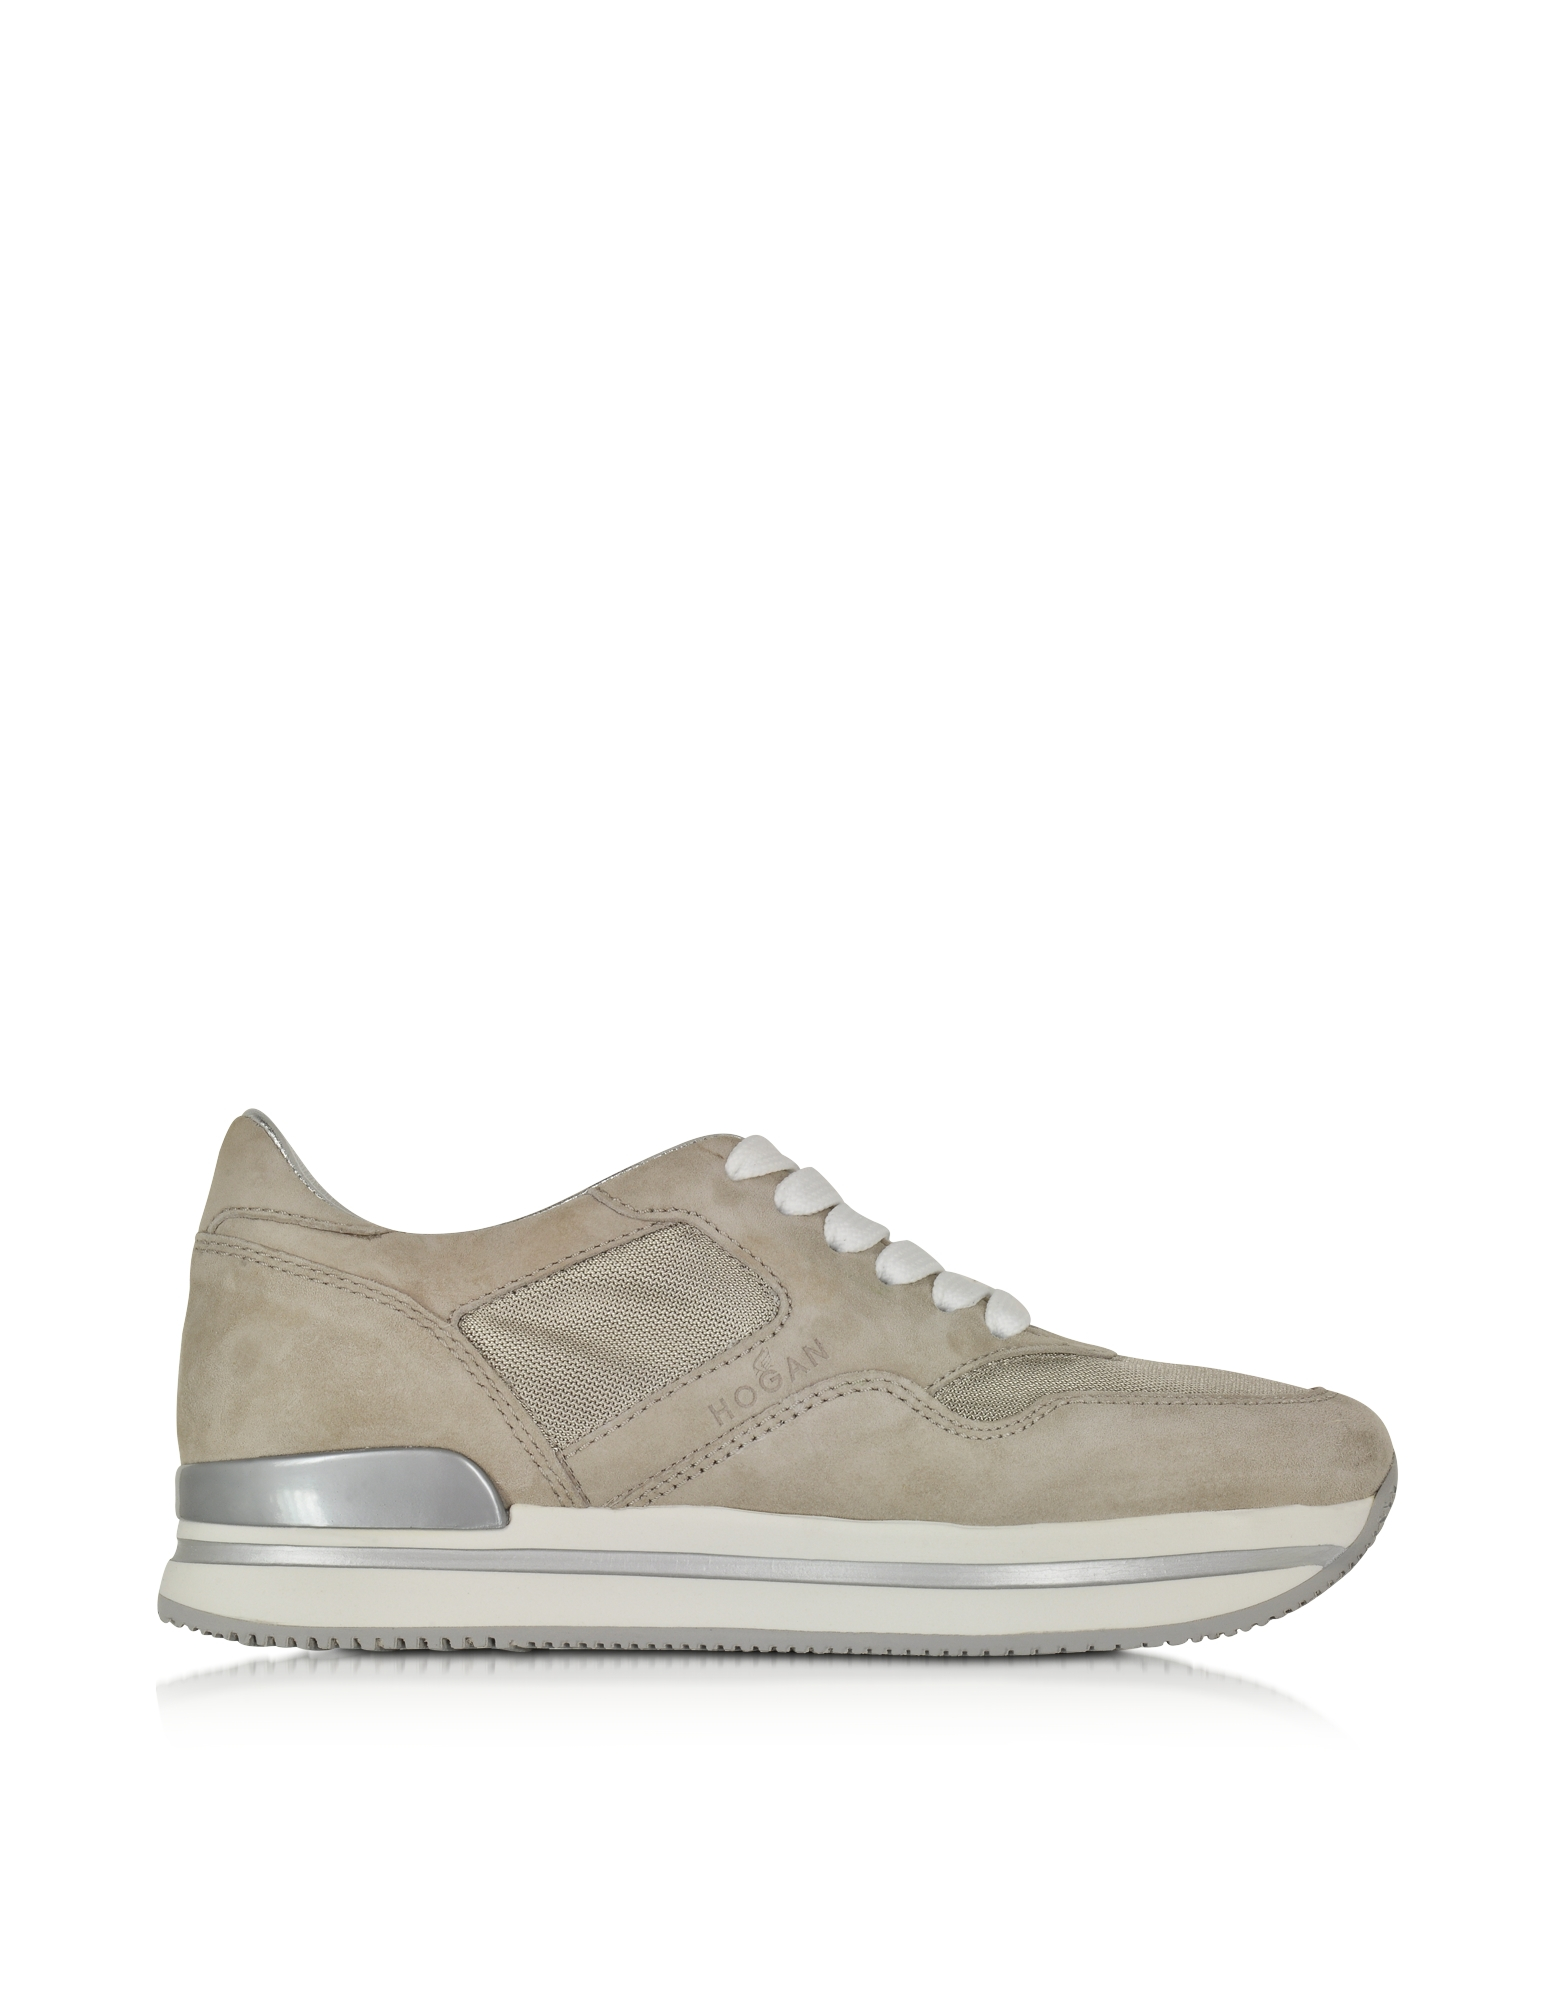 Forzieri Hogan Hogan Beige Fabric And Suede Sneaker In Natural Lyst